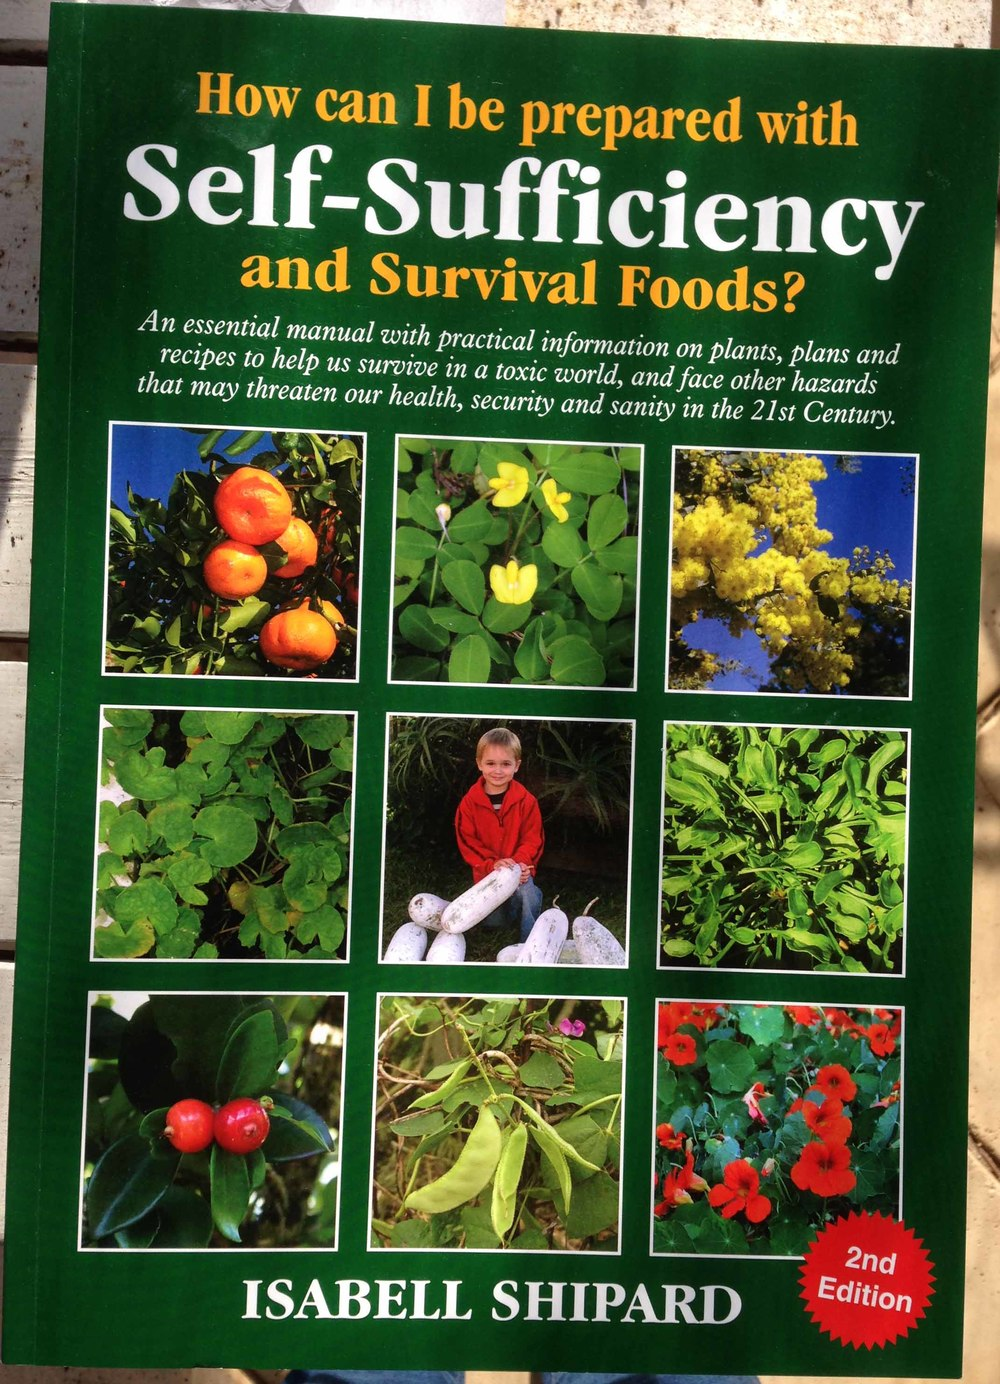 how can I be prepared with self sufficiency